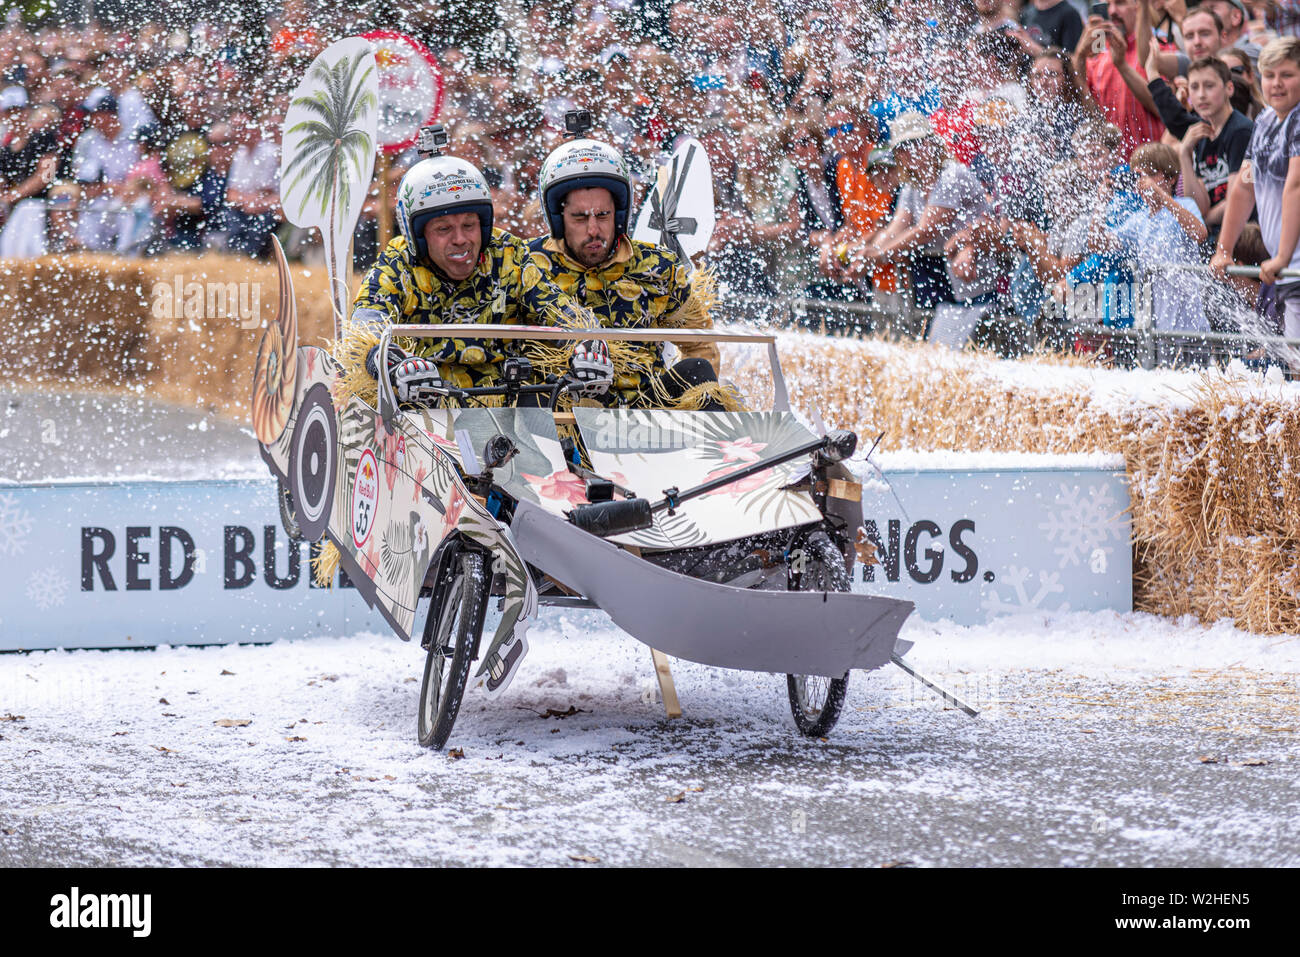 honolulu-healy-competing-in-the-red-bull-soapbox-race-2019-at-alexandra-park-london-uk-jumping-over-ramp-with-people-W2HEN5.jpg